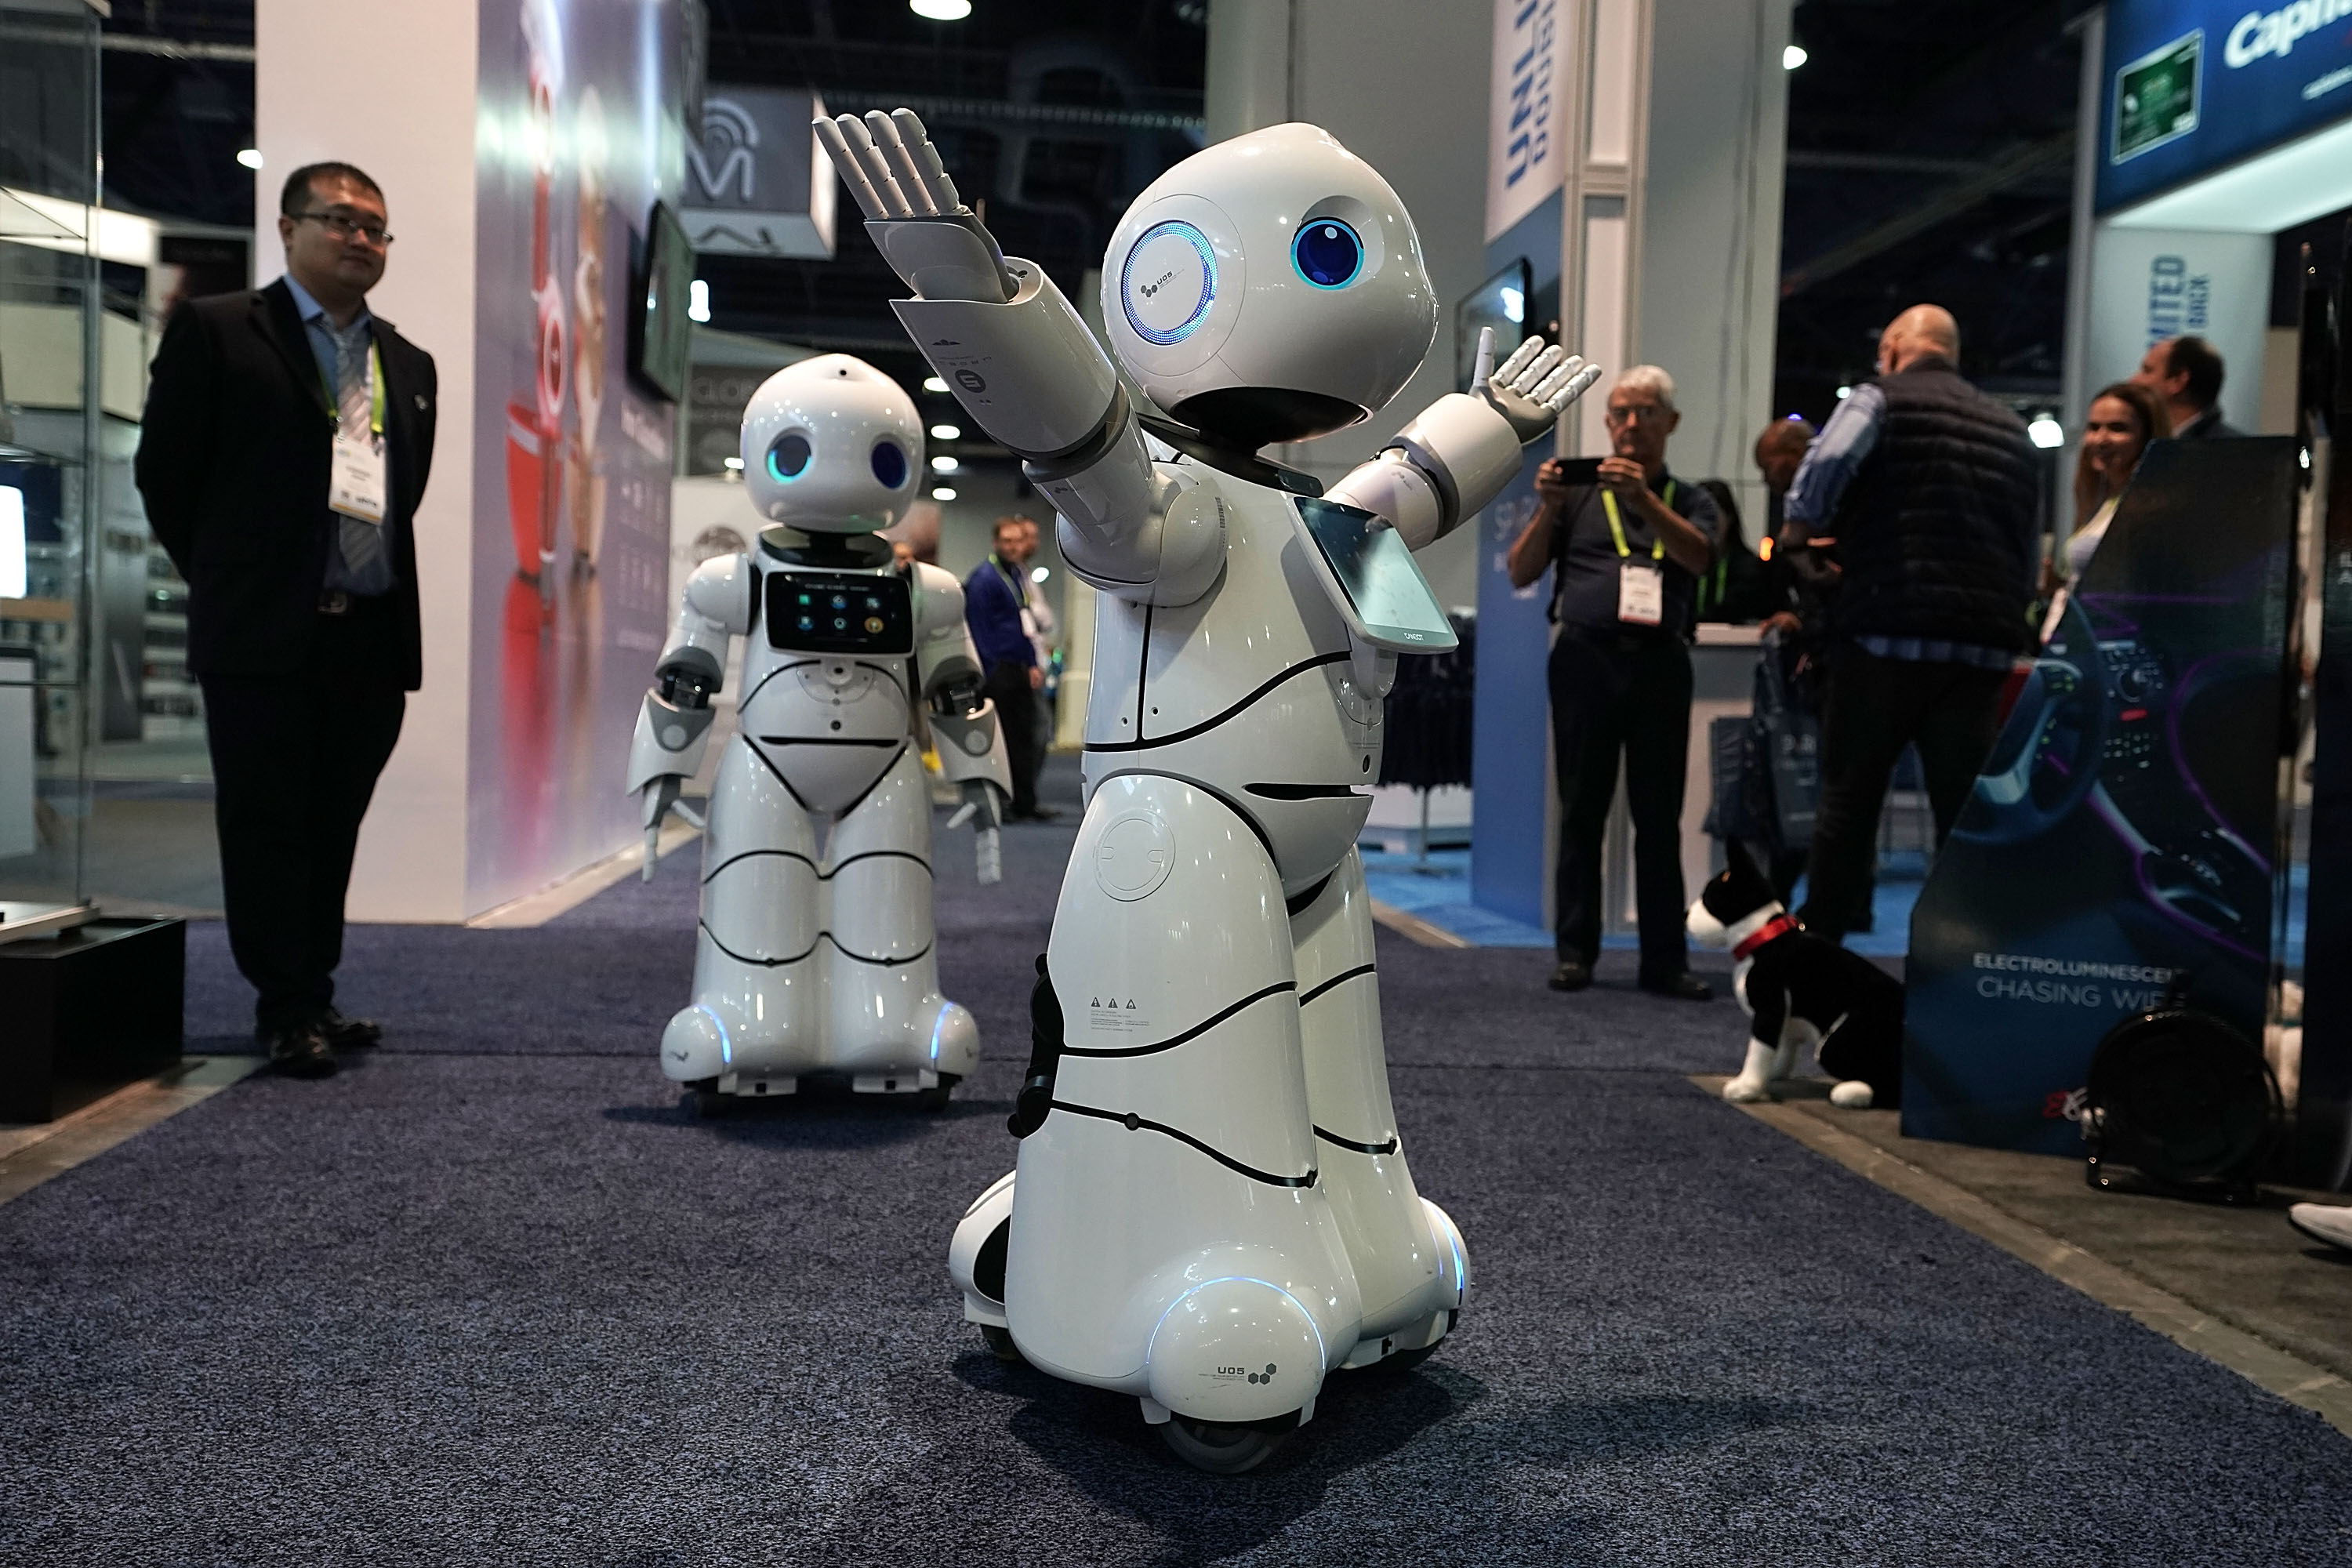 The U-Partner U05 humanoid service robots by Canbot, featured with free speech interaction, microsecond-level face recognition, autonomous obstacle avoidance walking, bionic action control and smart home hub, greet attendees during CES 2018 at the Las Vegas Convention Center on January 11, 2018 in Las Vegas, Nevada.